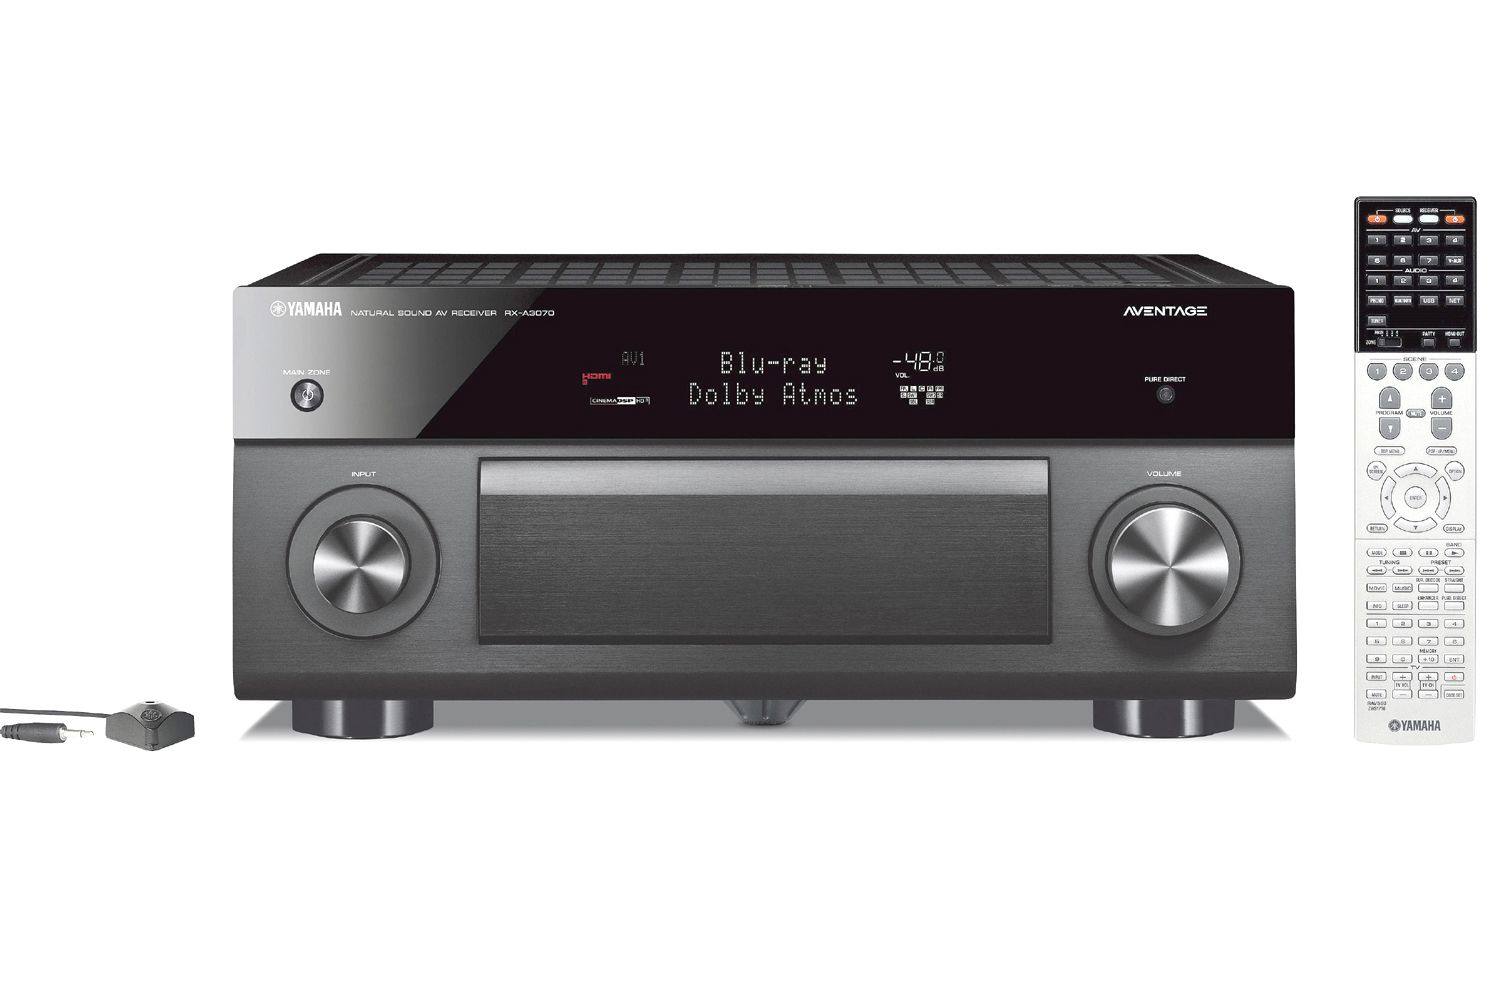 The 10 Best High-End Home Theater Receivers to Buy in 2018